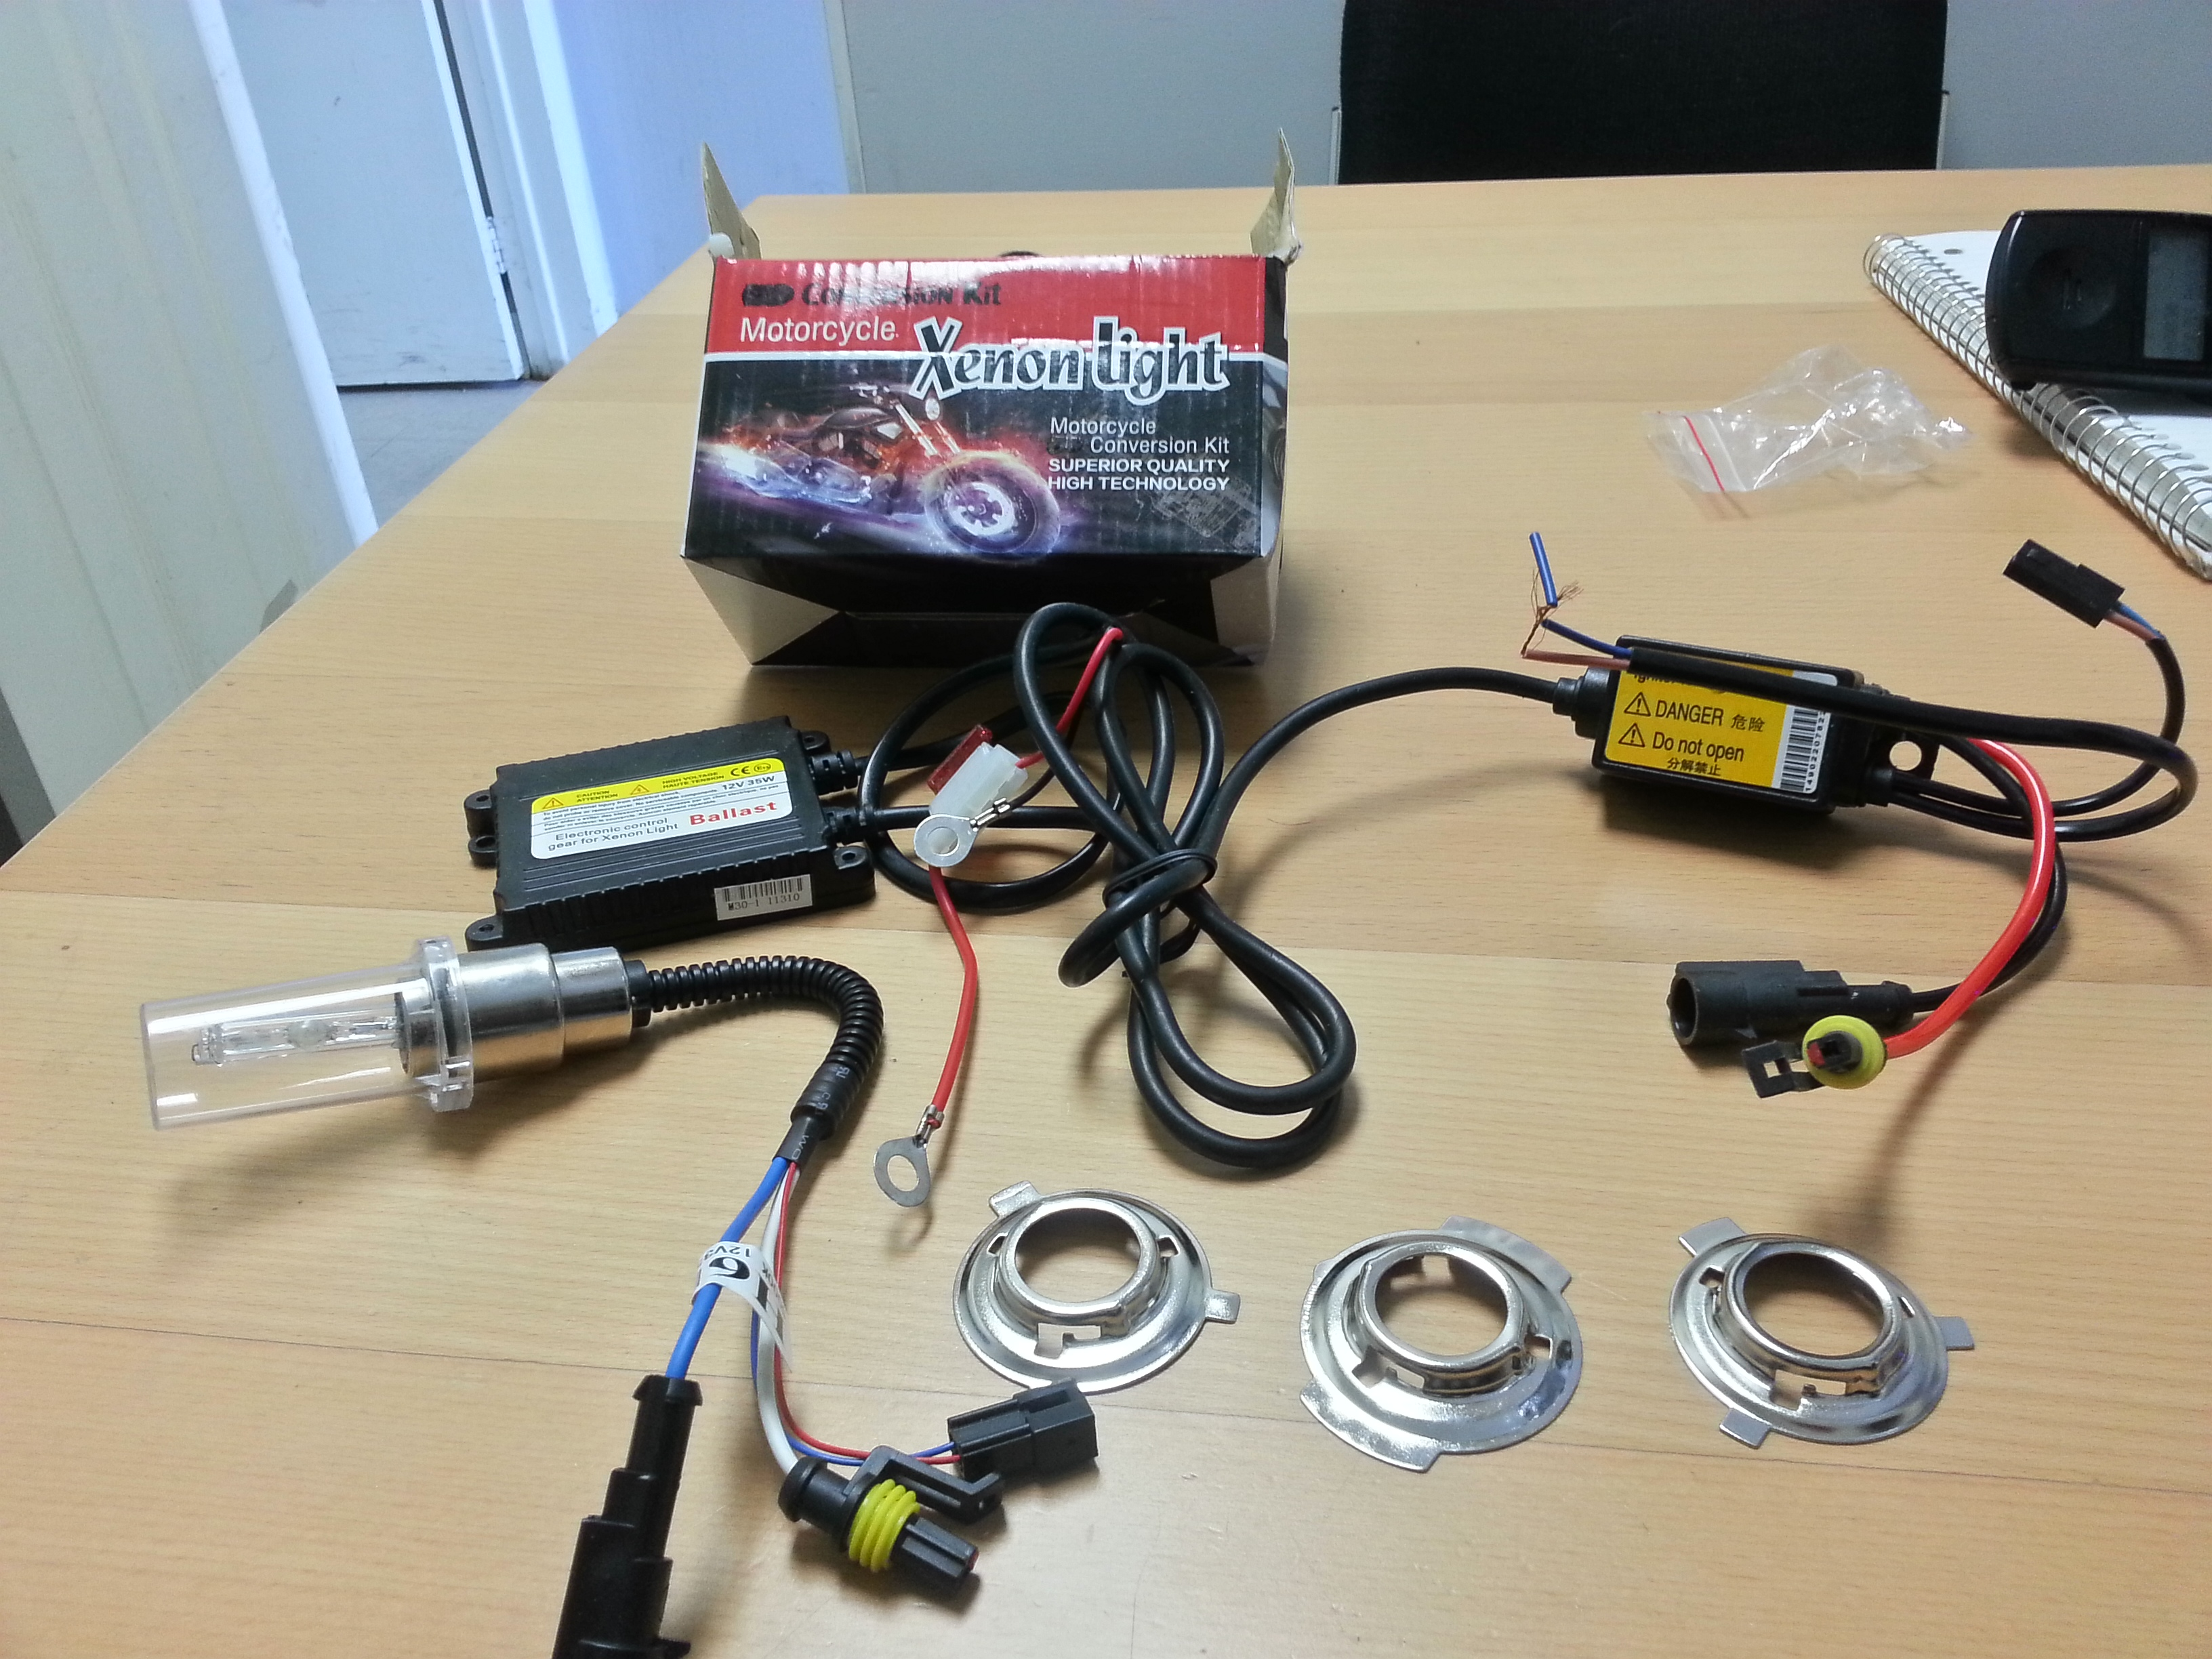 BI-XENON HID KIT FOR MOTORCYCLE AND CARS